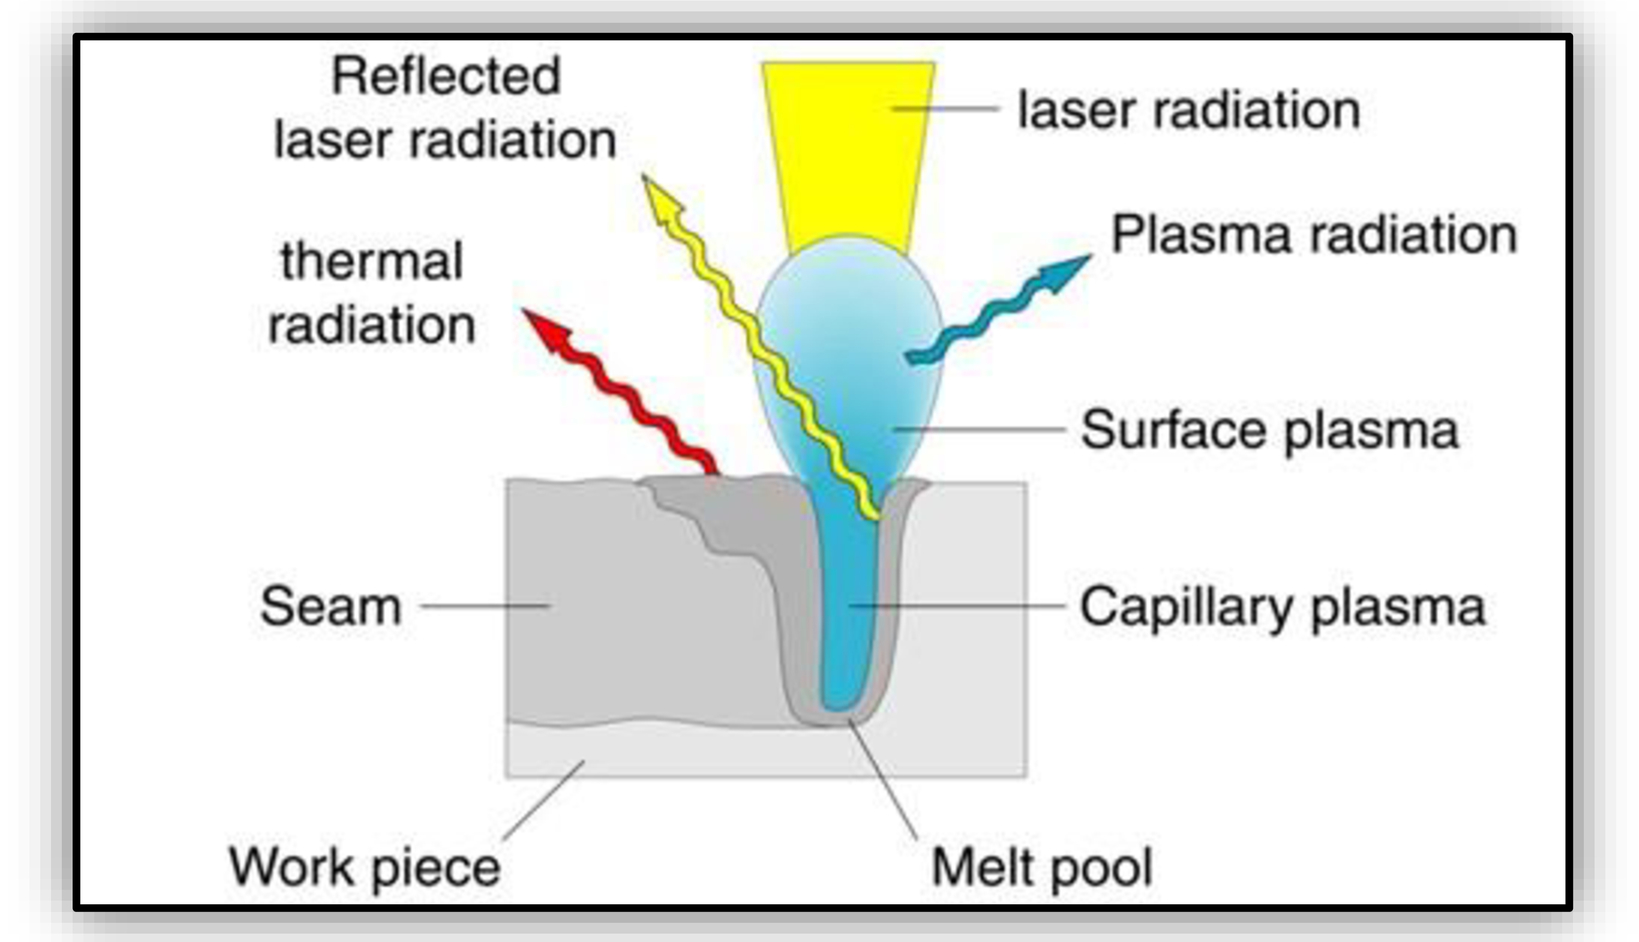 New horizons in laser material processing: how OCT sets new